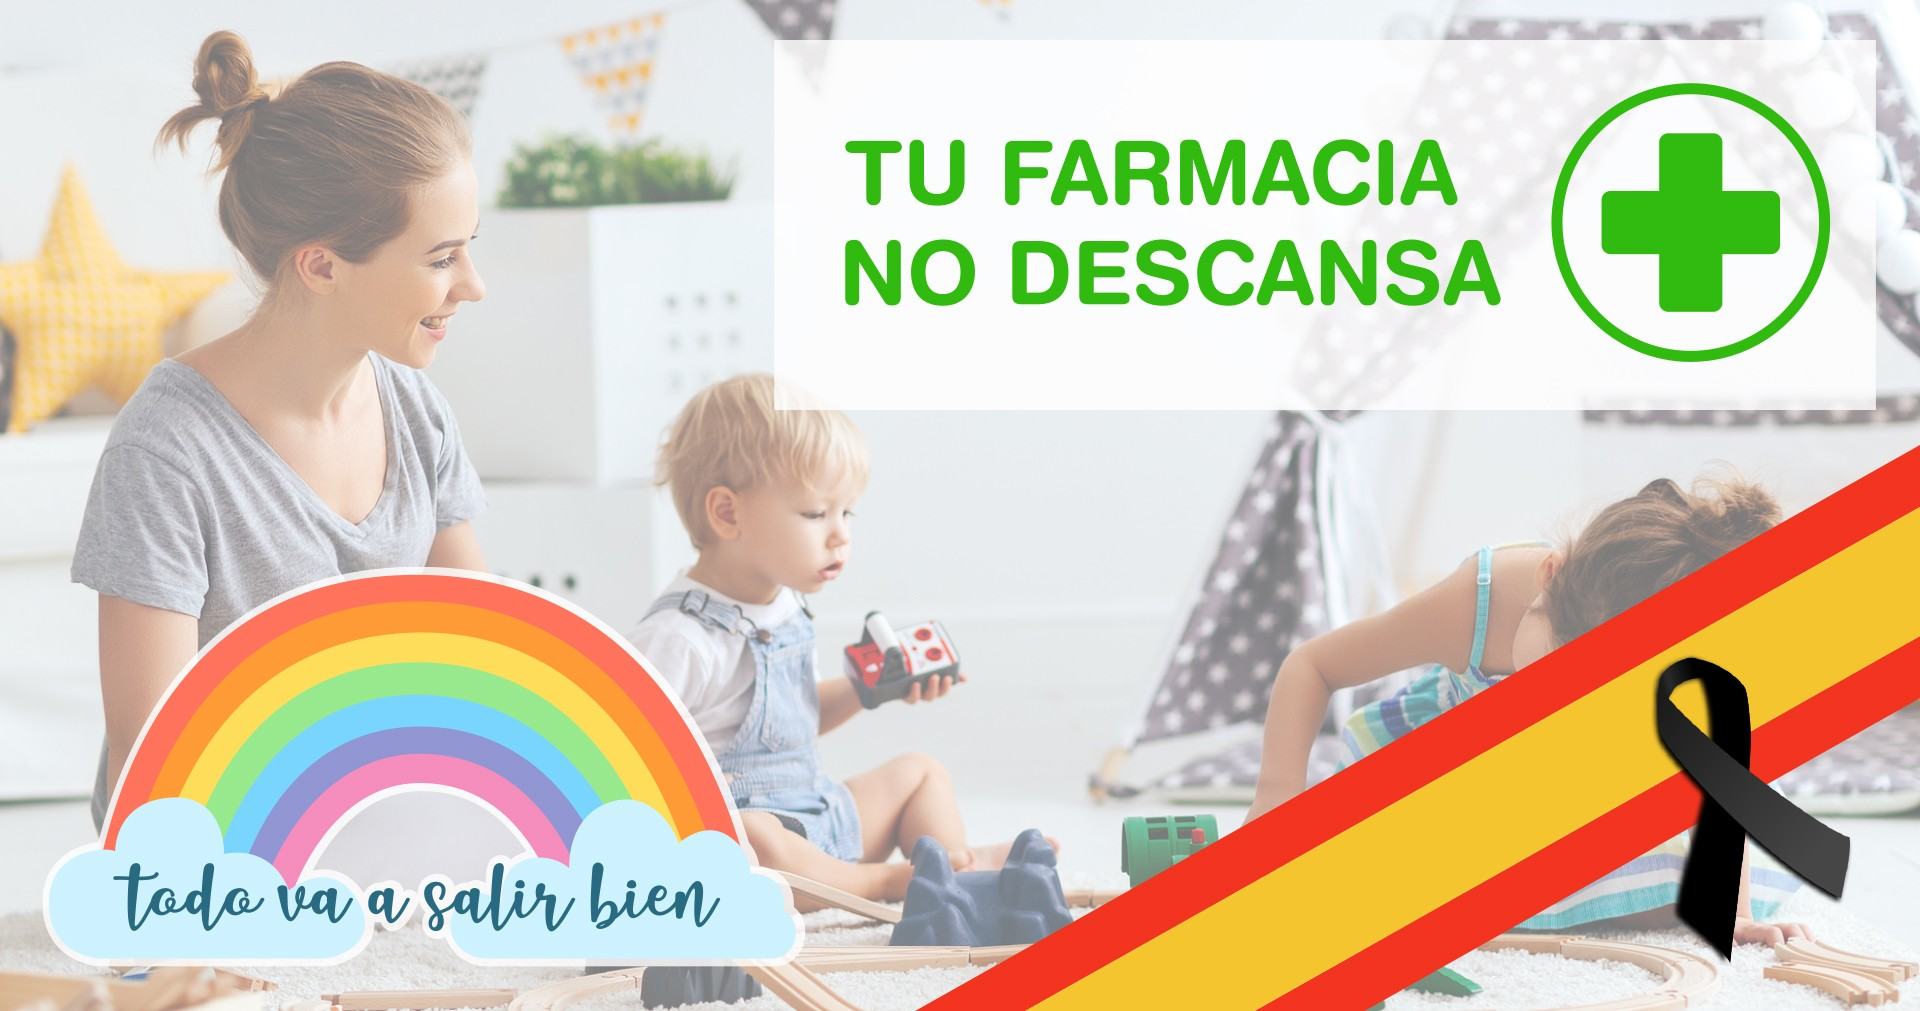 Tu farmacia no descansa